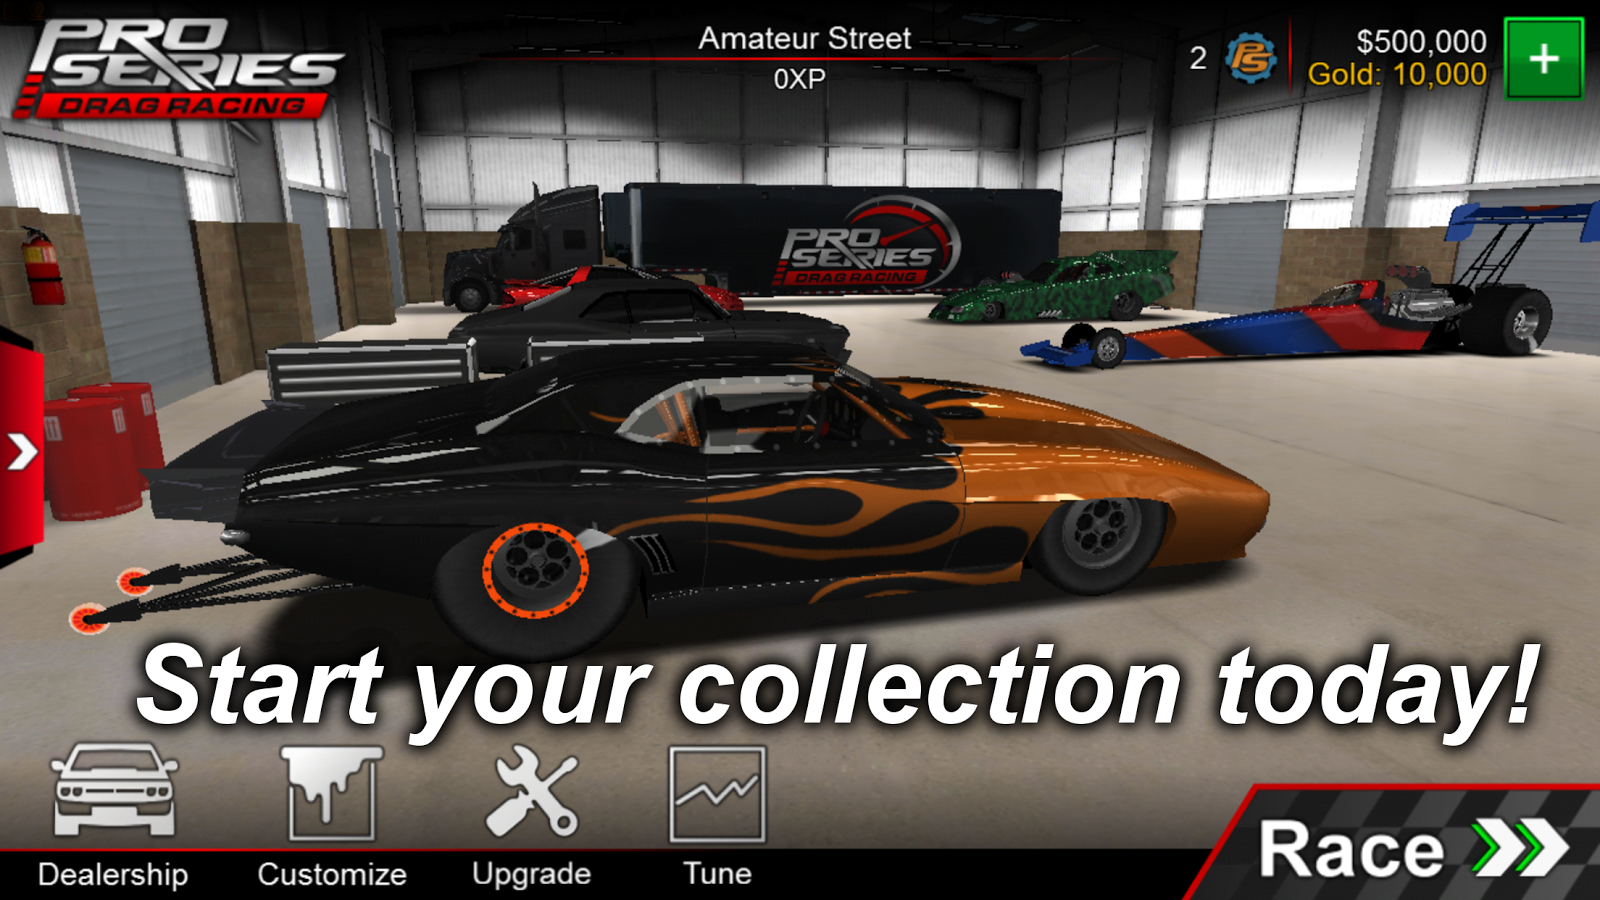 Pro Series Drag Racing 1.71 APK Download - Android Racing Games